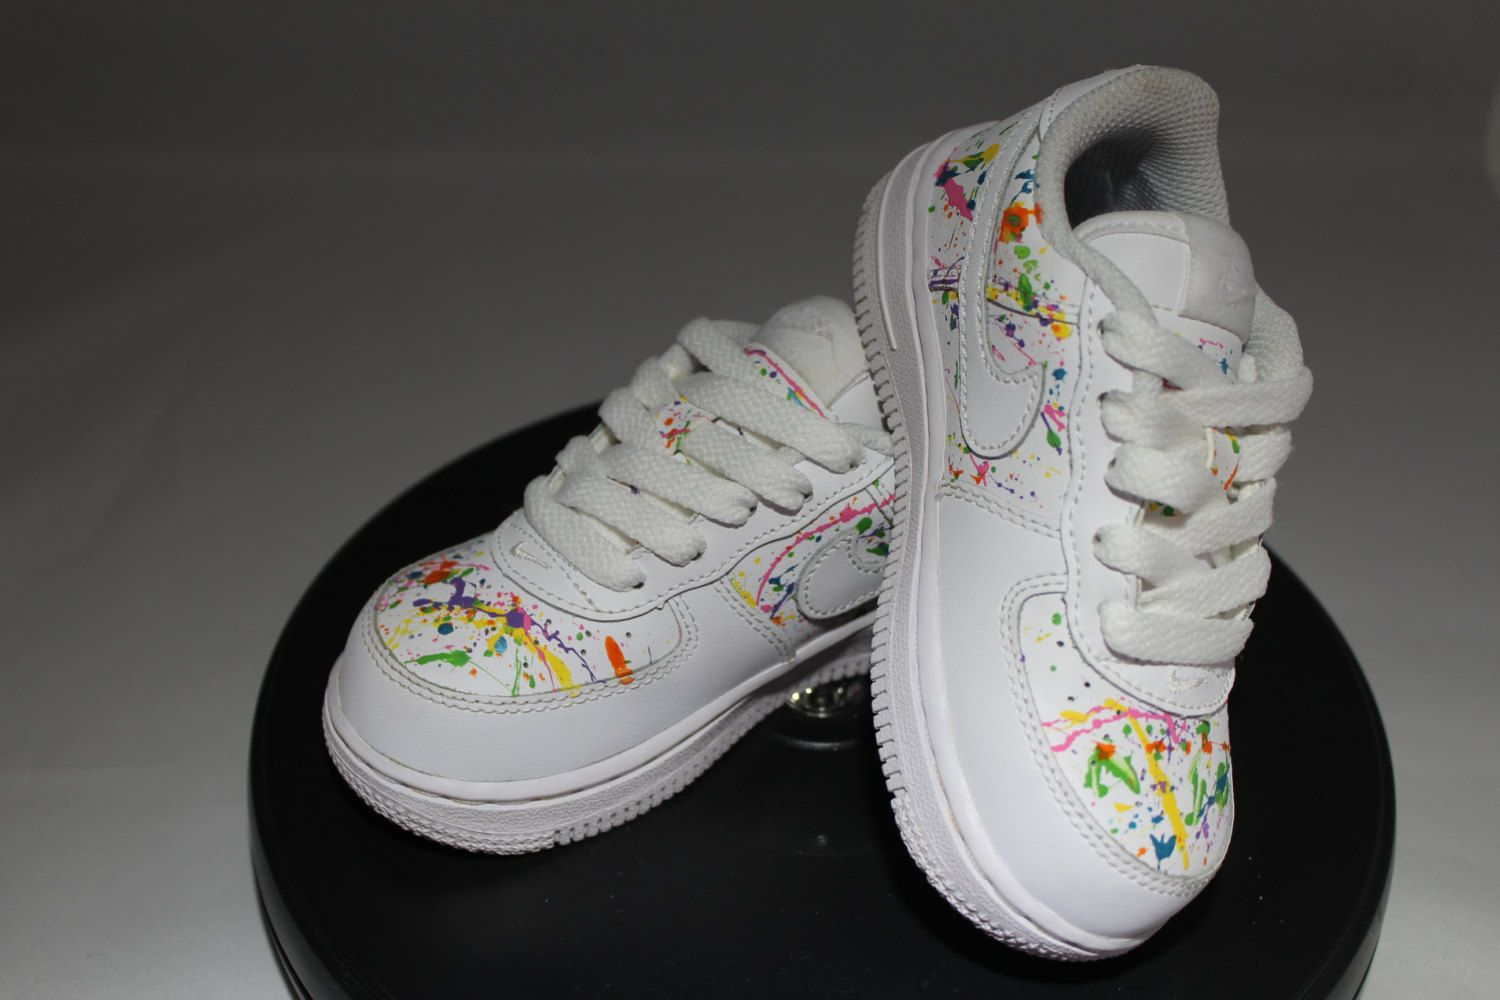 on sale a0898 918ee Custom Splatter Painted Air Force Ones- Hand Painted Tennis Shoes- Nikes- Splatter  Paint- Custom Tennis Shoes- Custom Painted Air Force Ones by ...